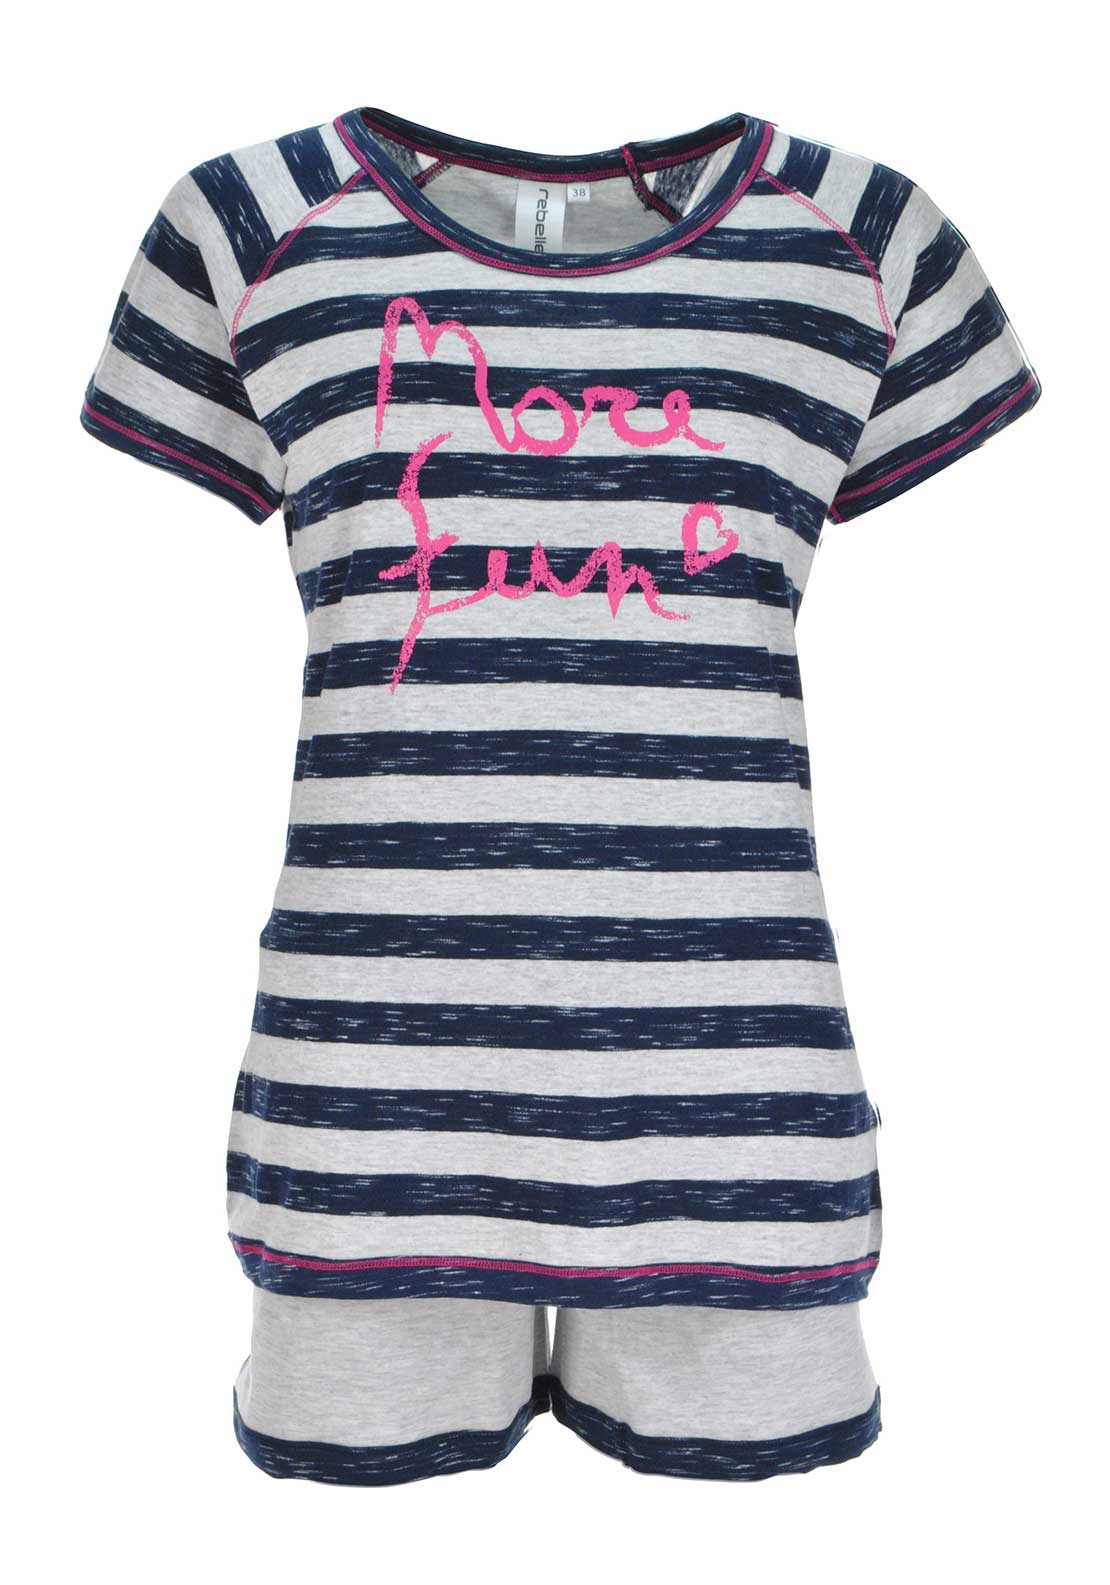 Rebelle Striped Pyjama Set, Grey and Navy